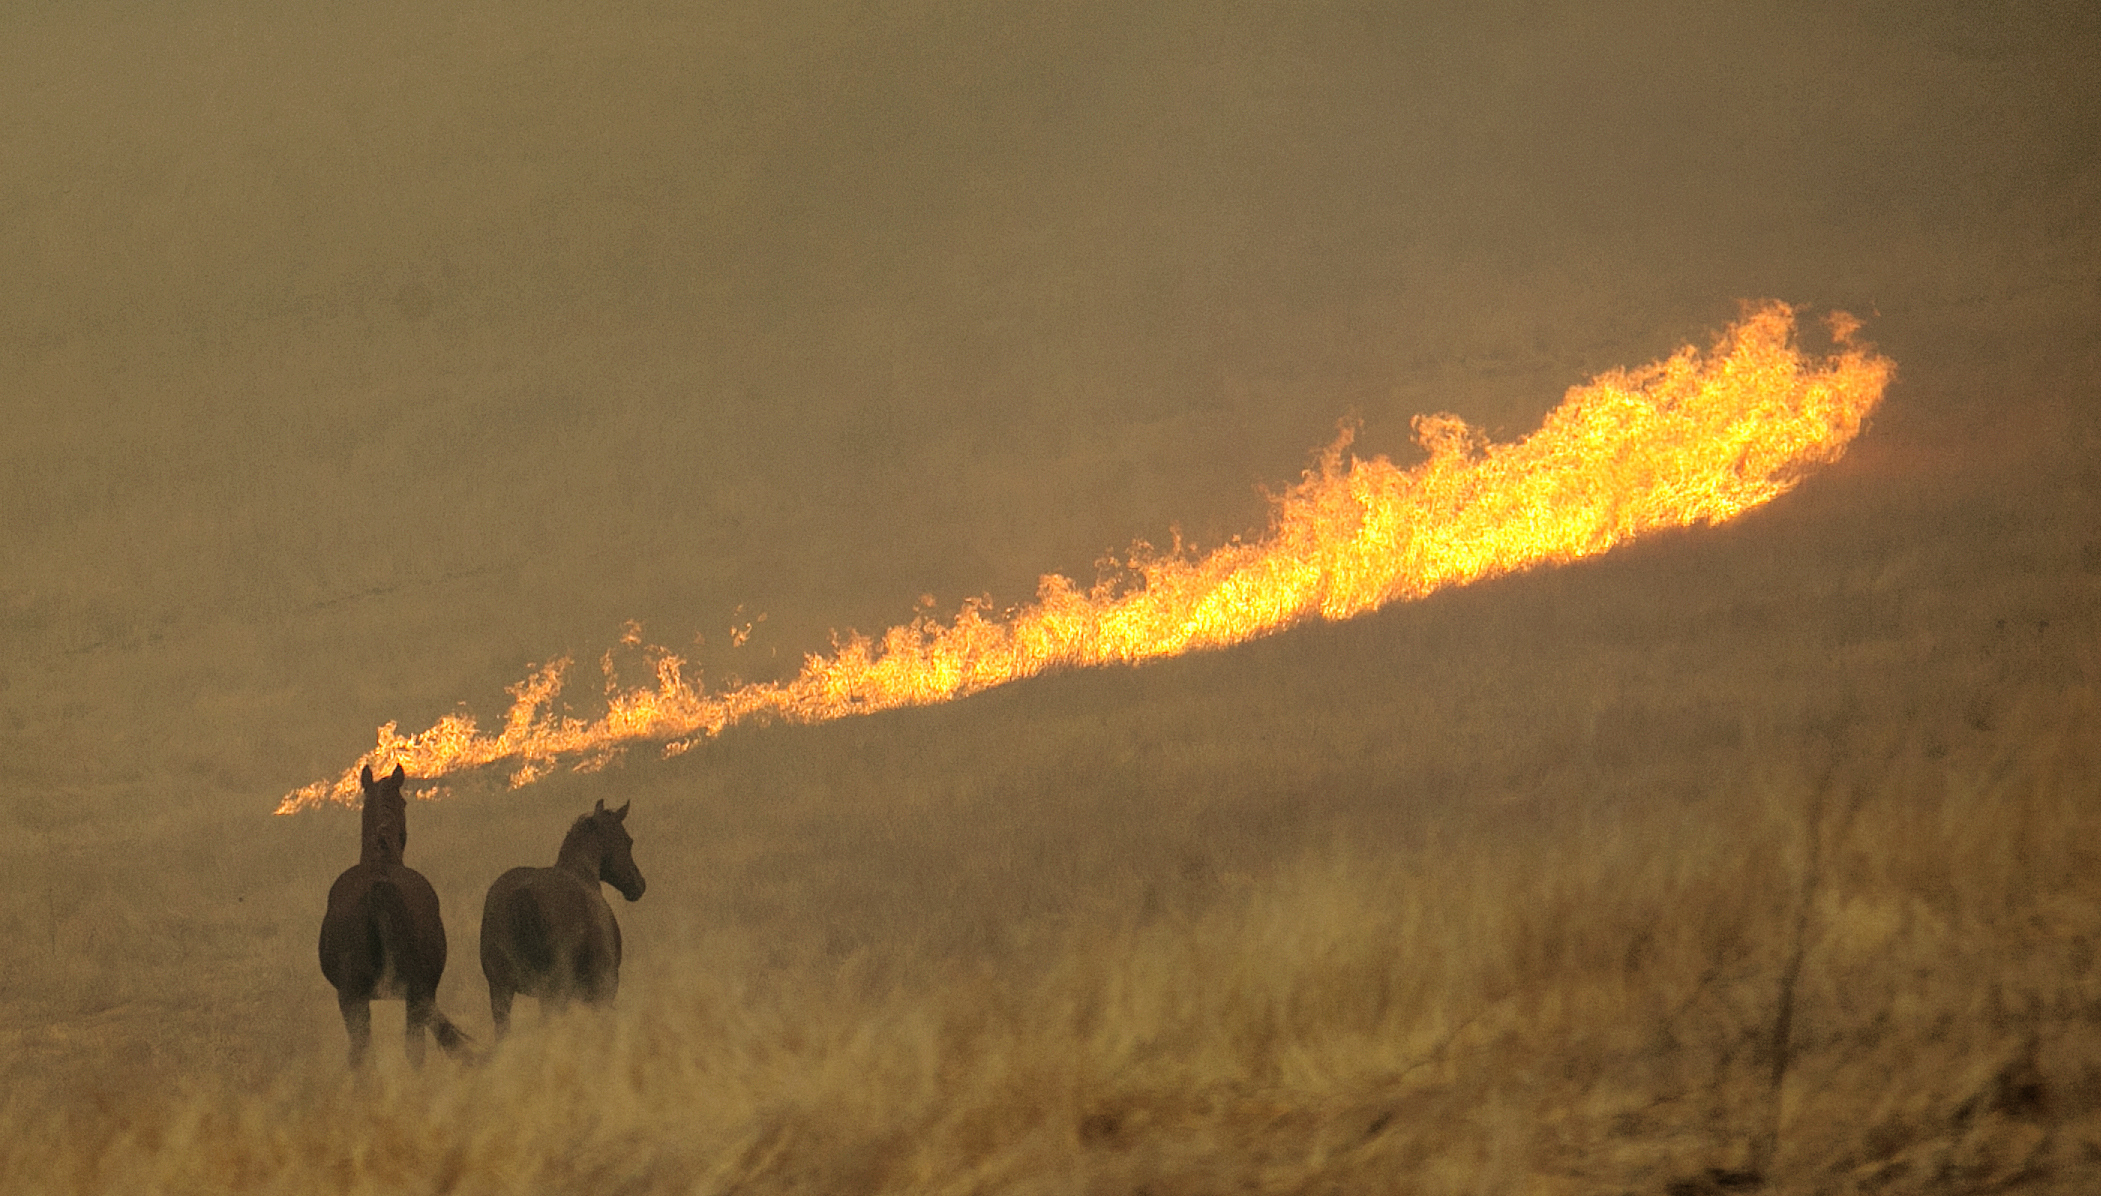 <div class='meta'><div class='origin-logo' data-origin='none'></div><span class='caption-text' data-credit='Rich Pedroncelli/AP Photo'>Flames from a wildfire approach a pair of horses in a field Monday, Oct. 9, 2017, in Napa, Calif.</span></div>